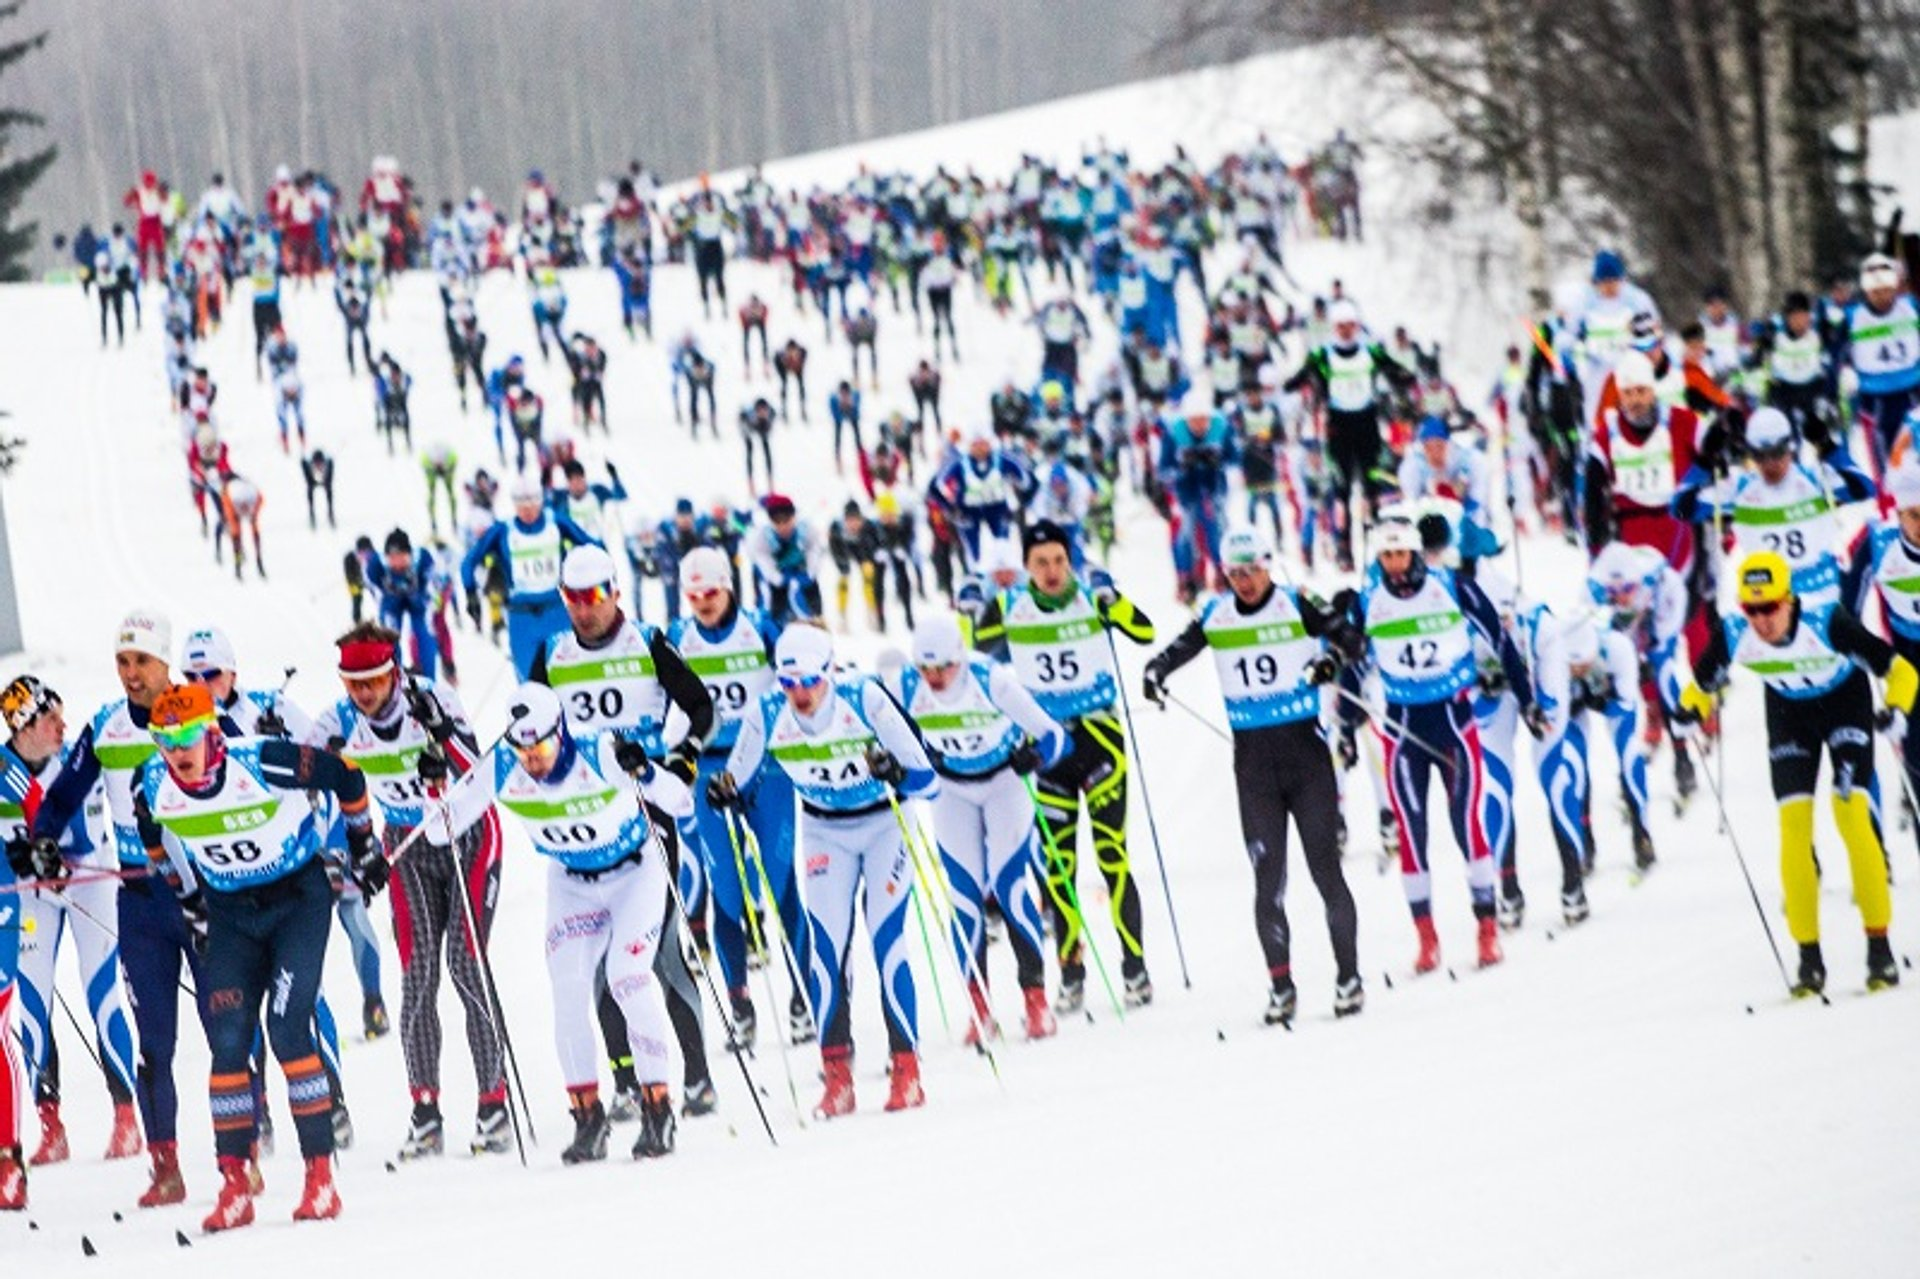 Tartu Ski Marathon in Estonia - Best Season 2020